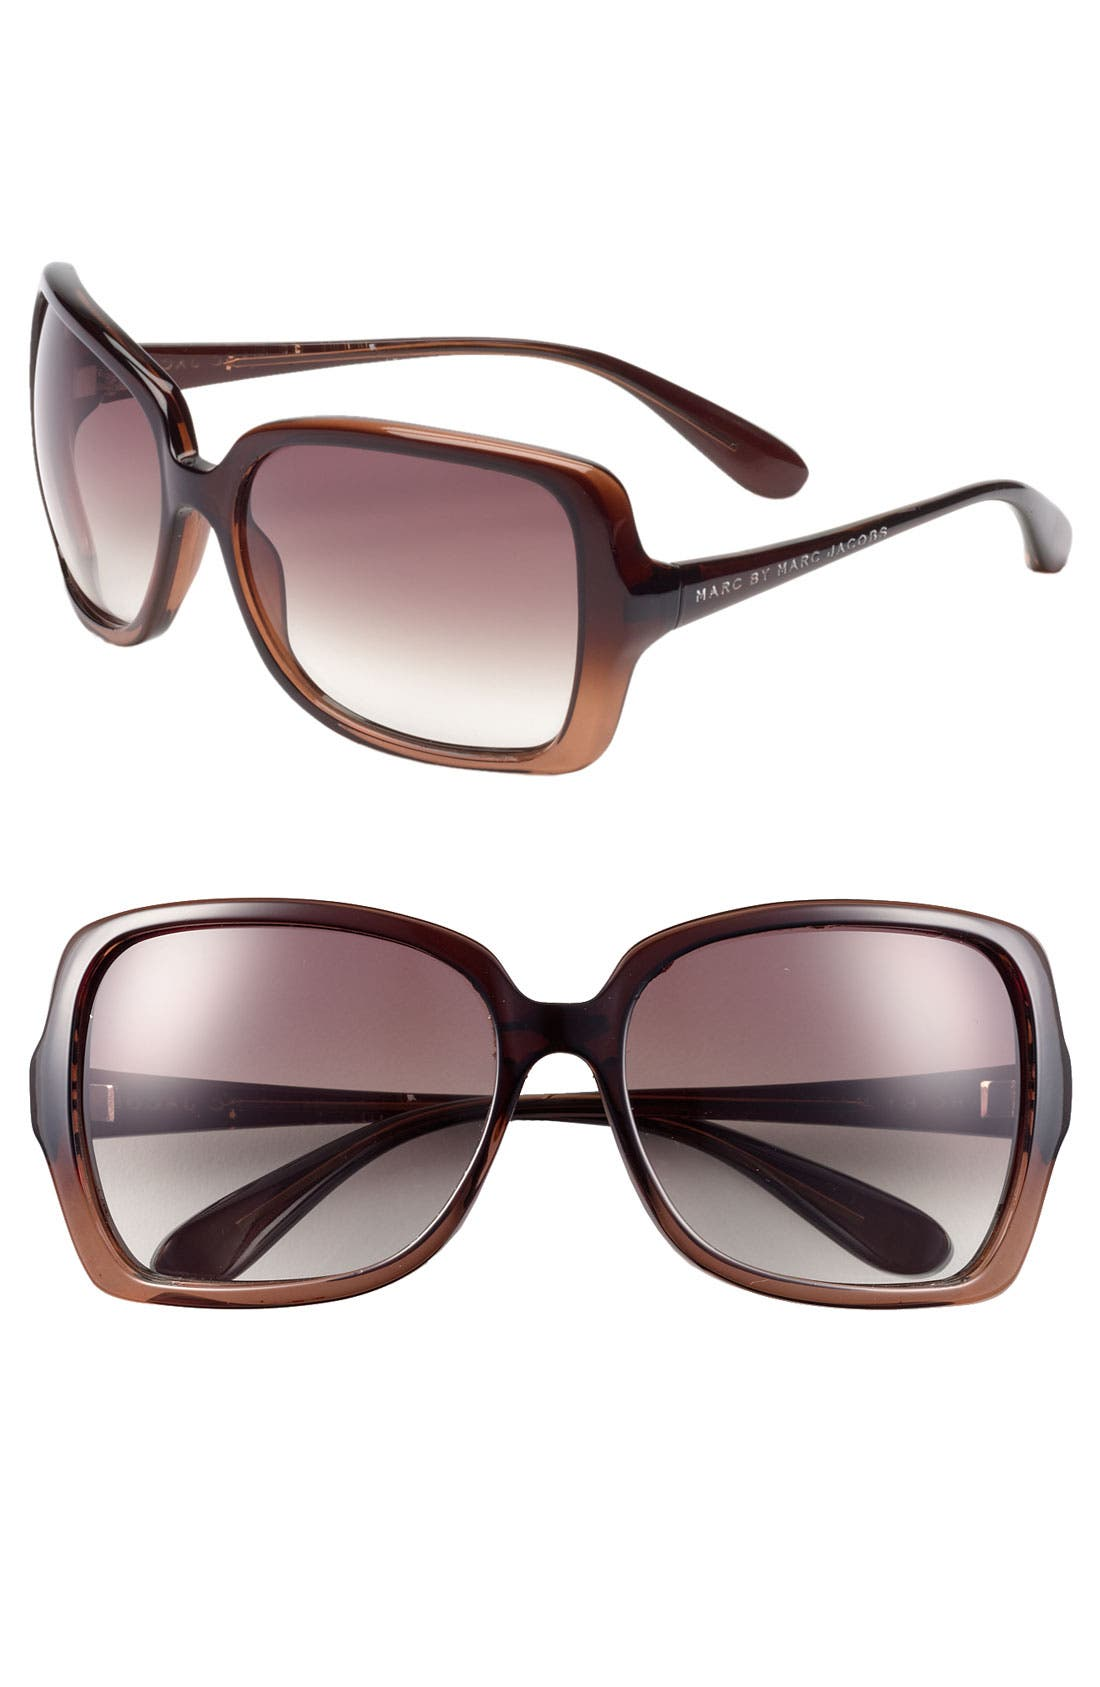 Alternate Image 1 Selected - MARC BY MARC JACOBS 59mm Vintage Inspired Oversized Sunglasses